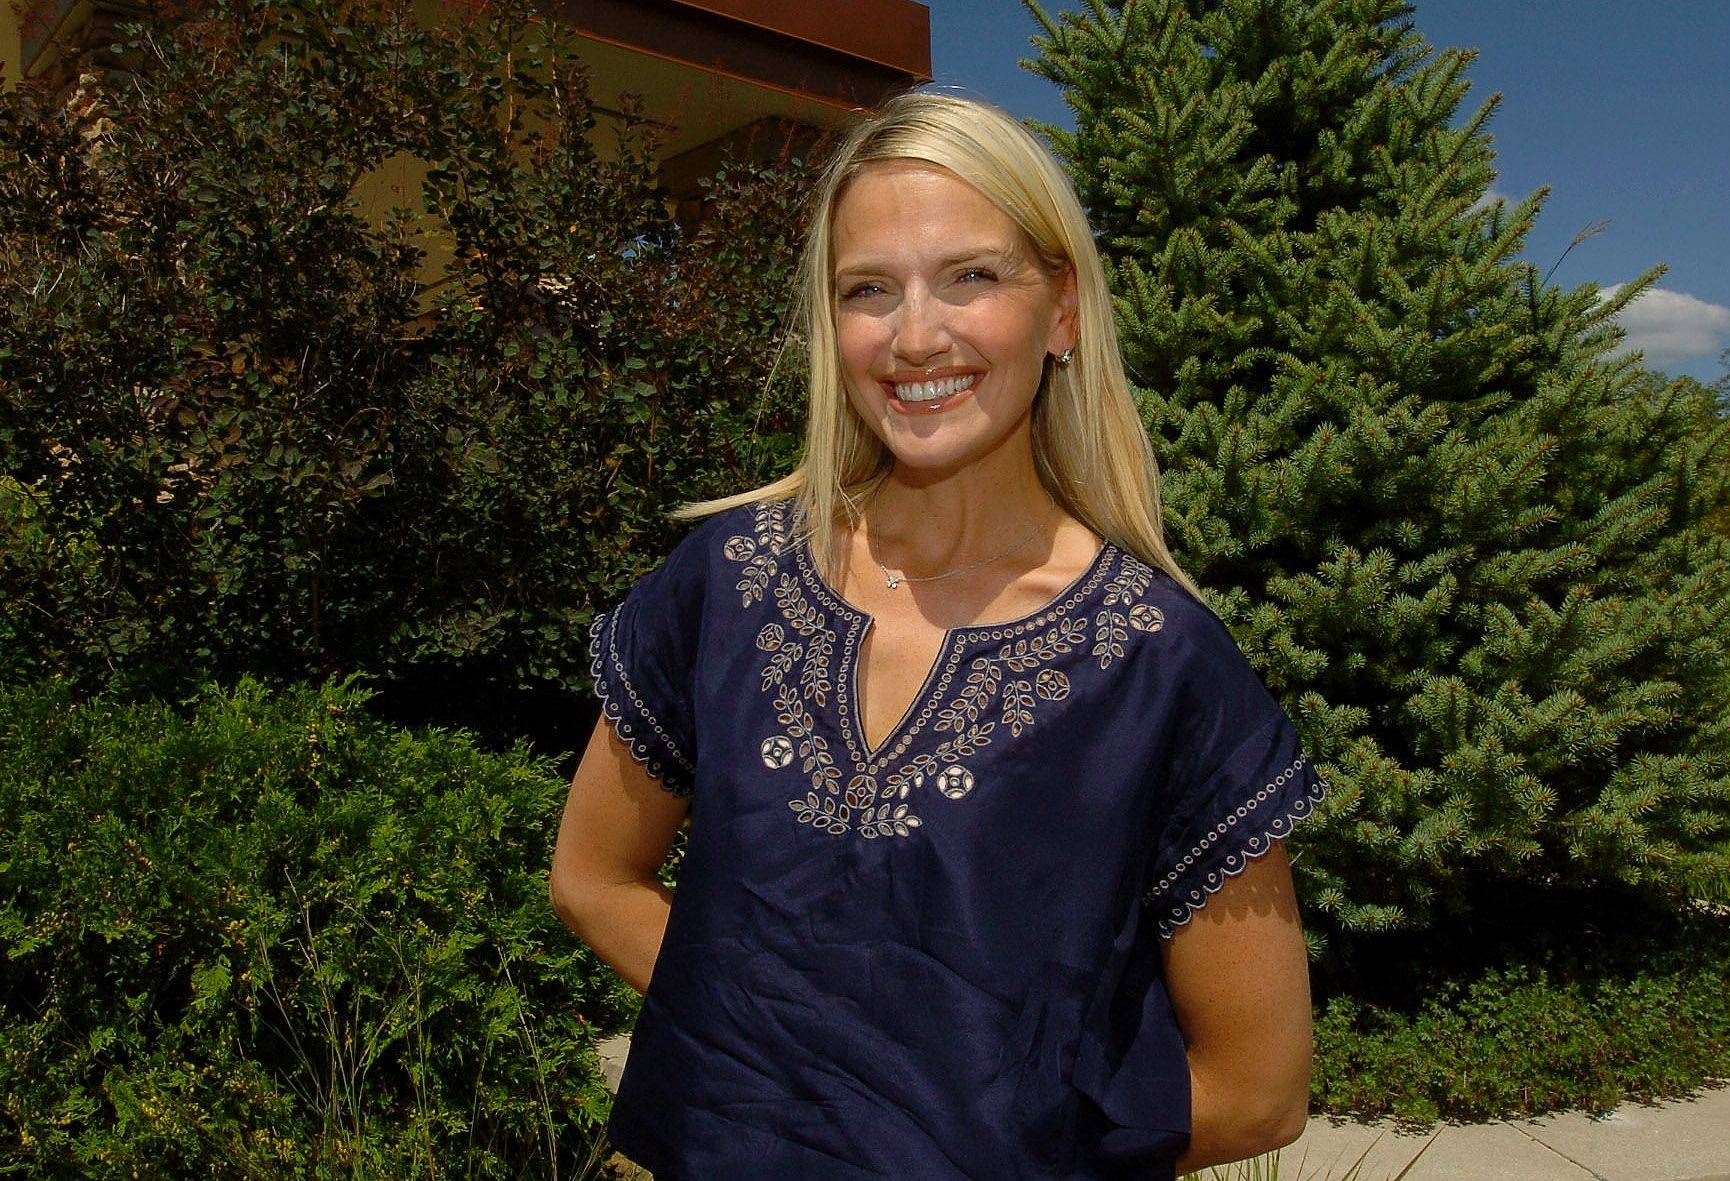 Wood Dale native and HGTV celebrity designer Monica Pedersen says she's been living her dream.